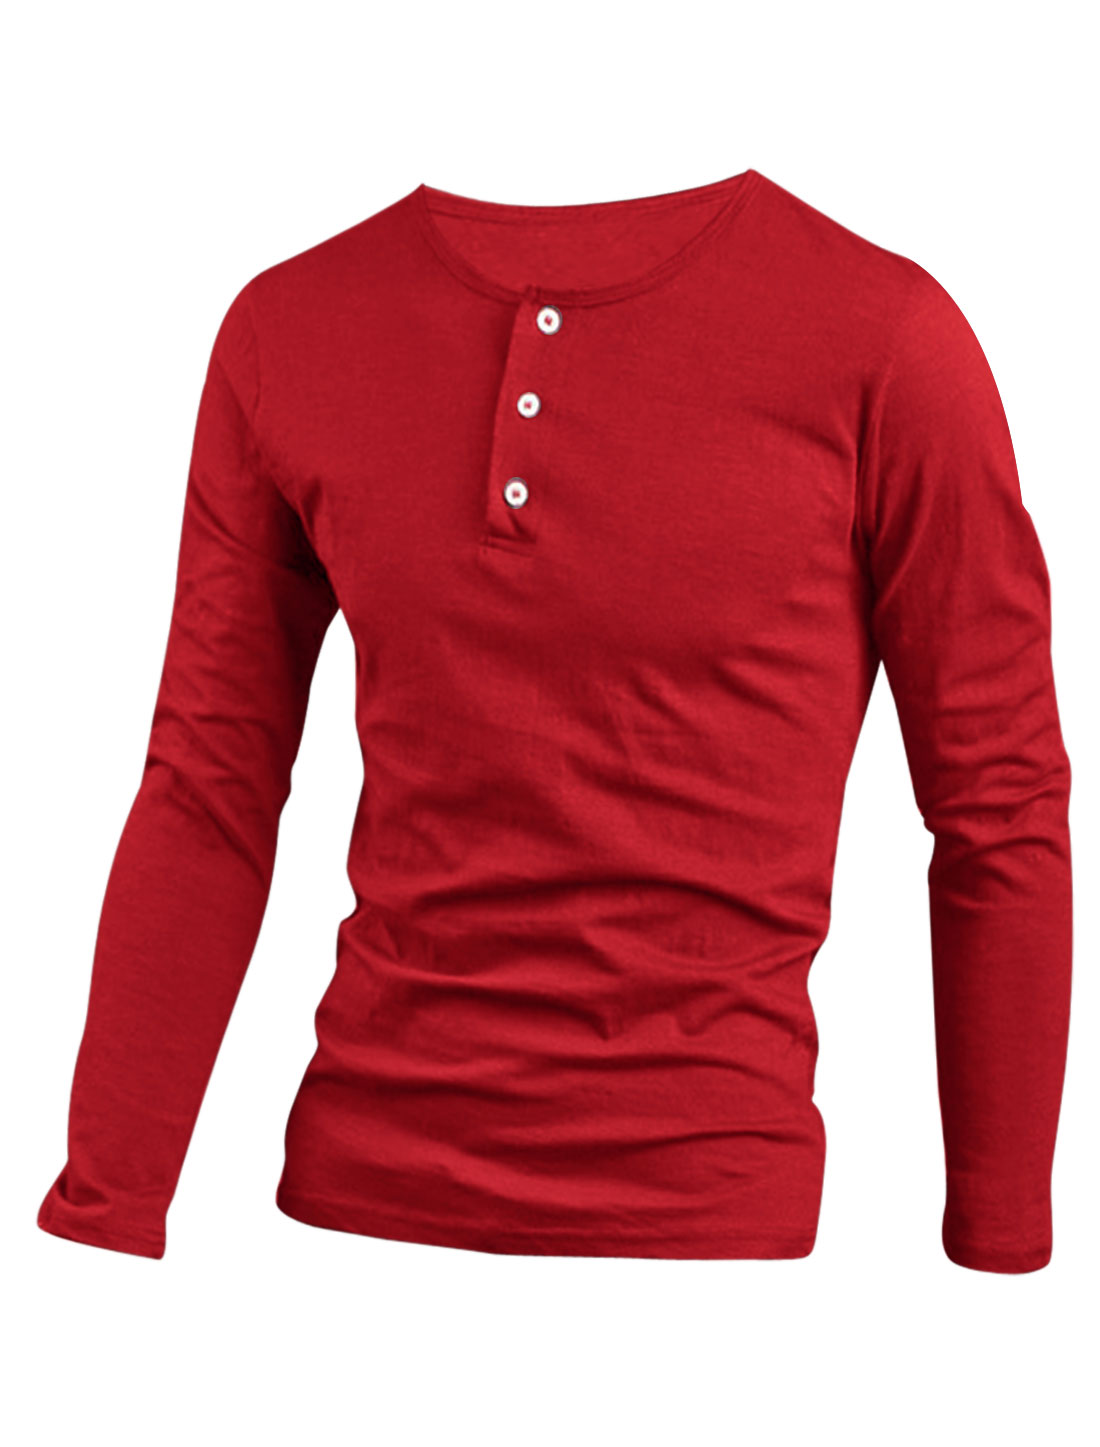 Soft 1/4 Placket Design Henley Shirt for Men Red M